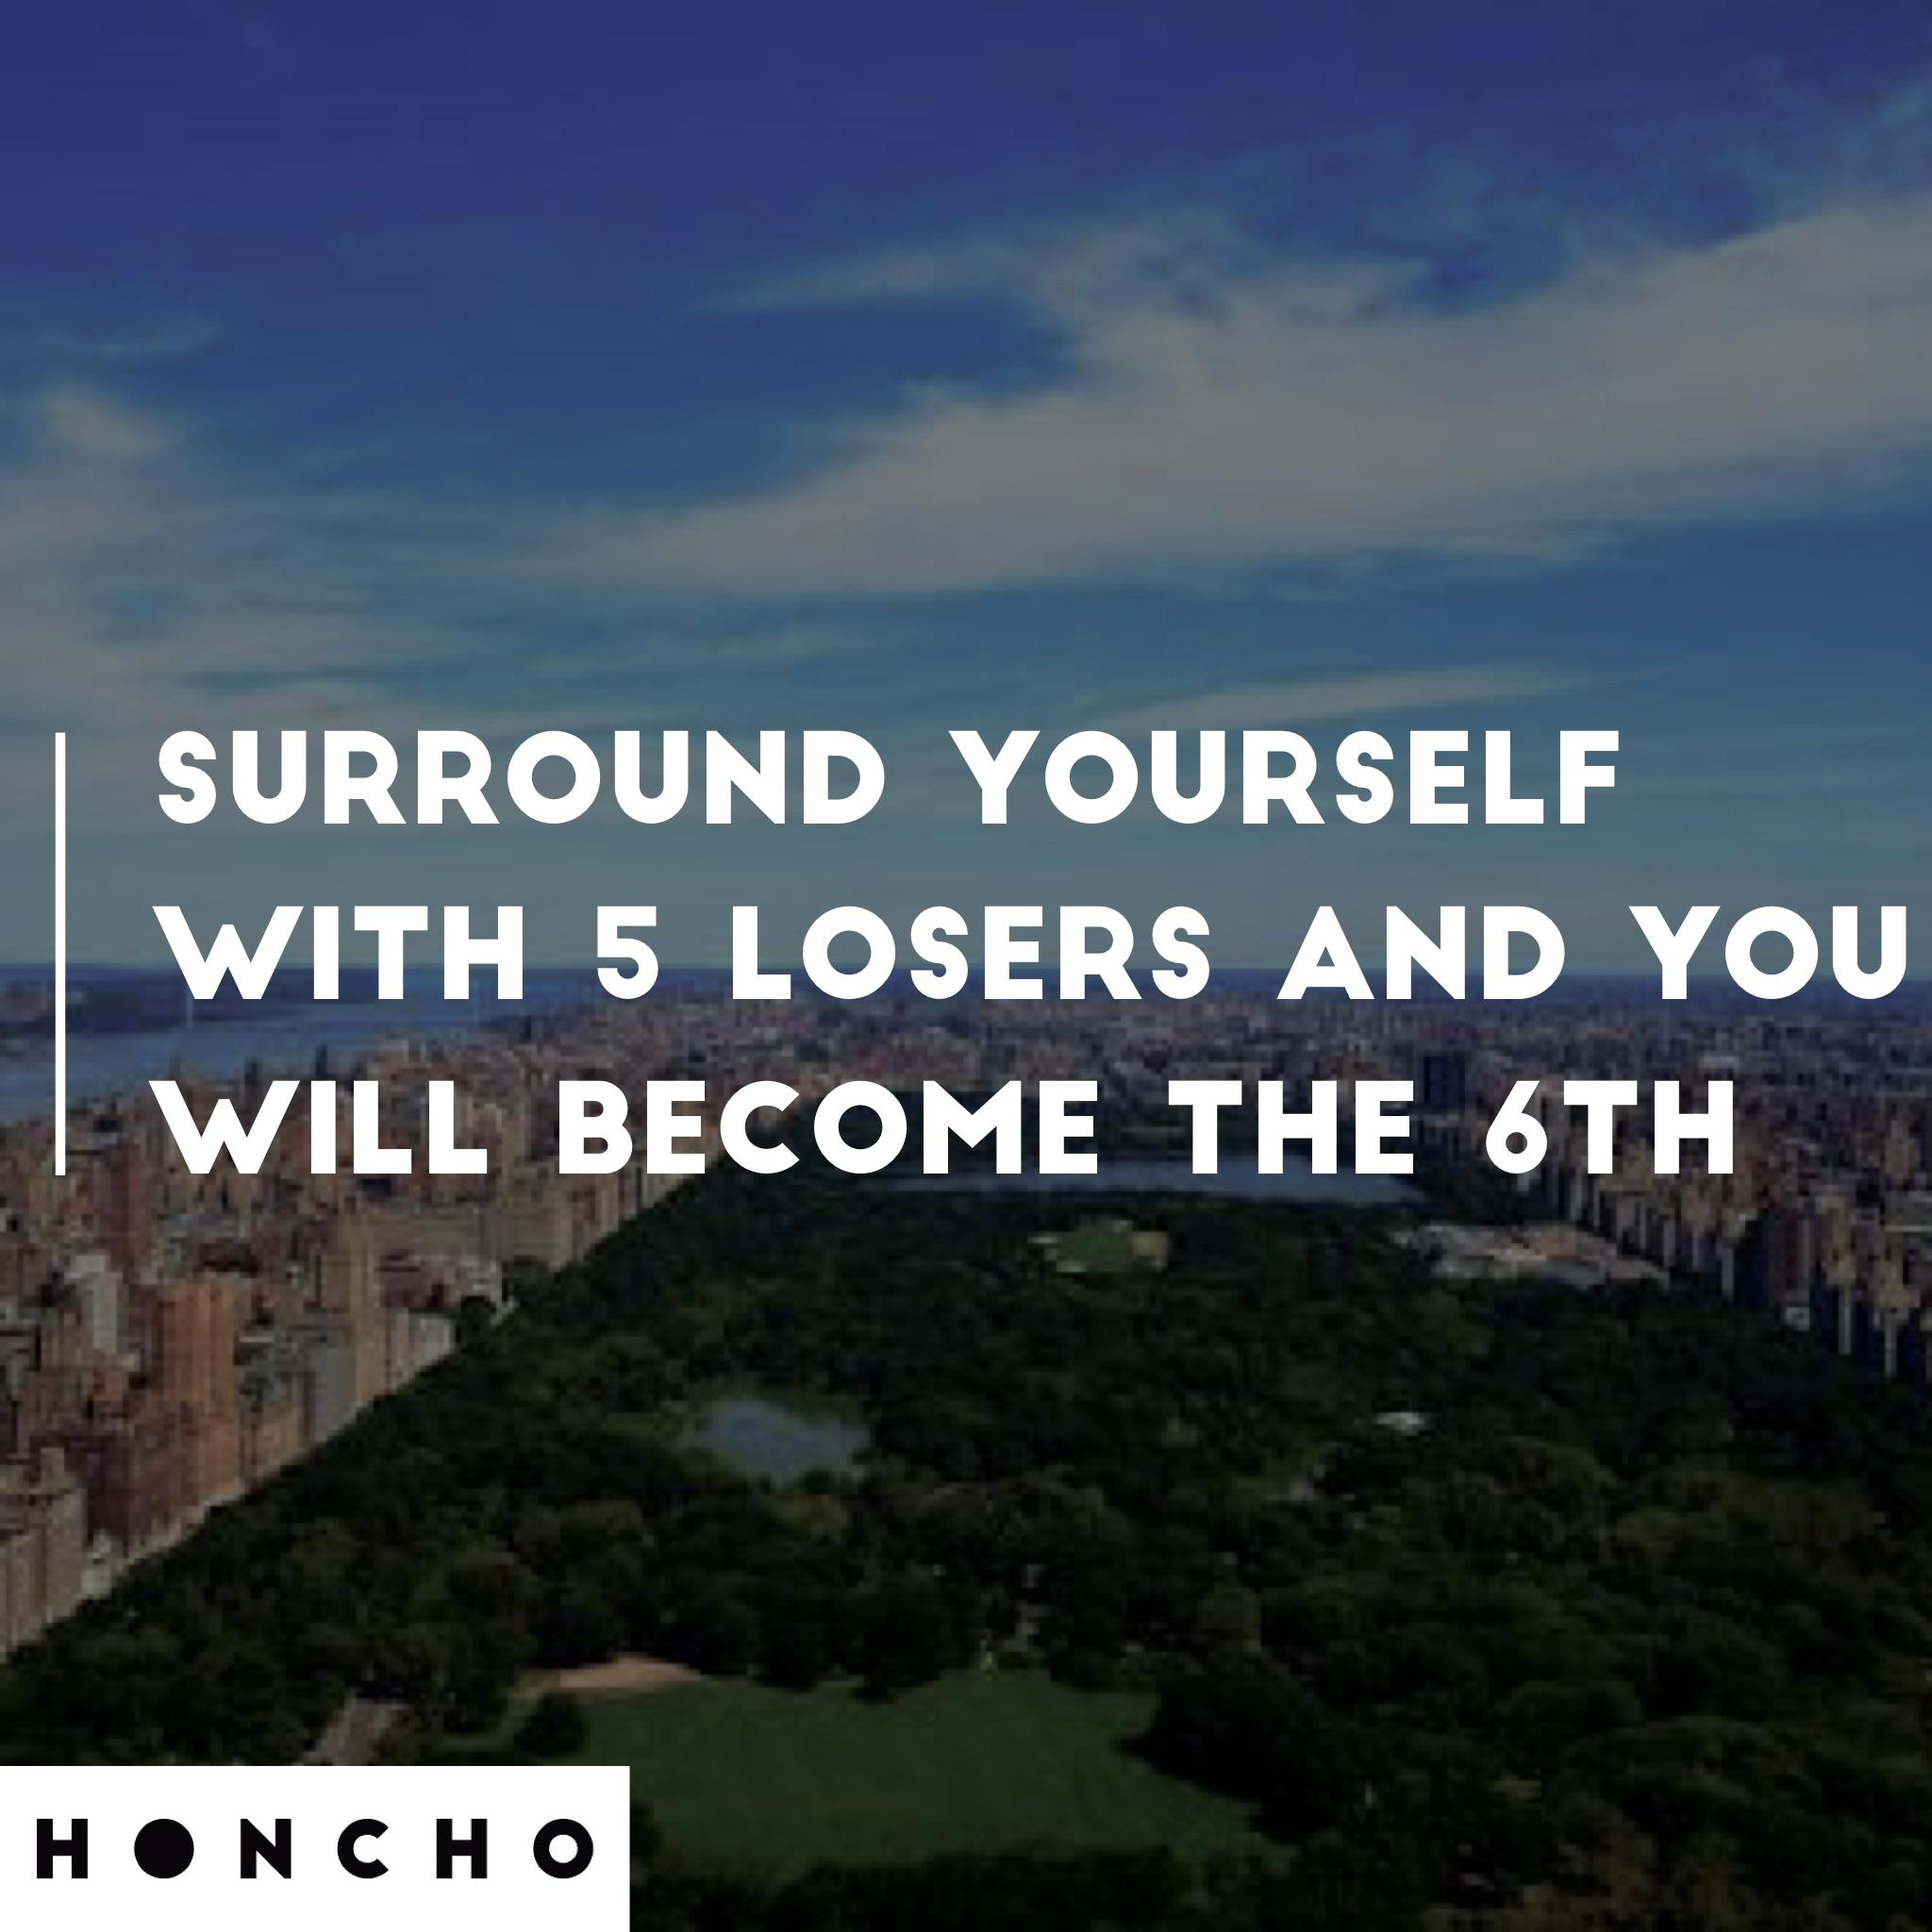 [image] Surround yourself with the right people